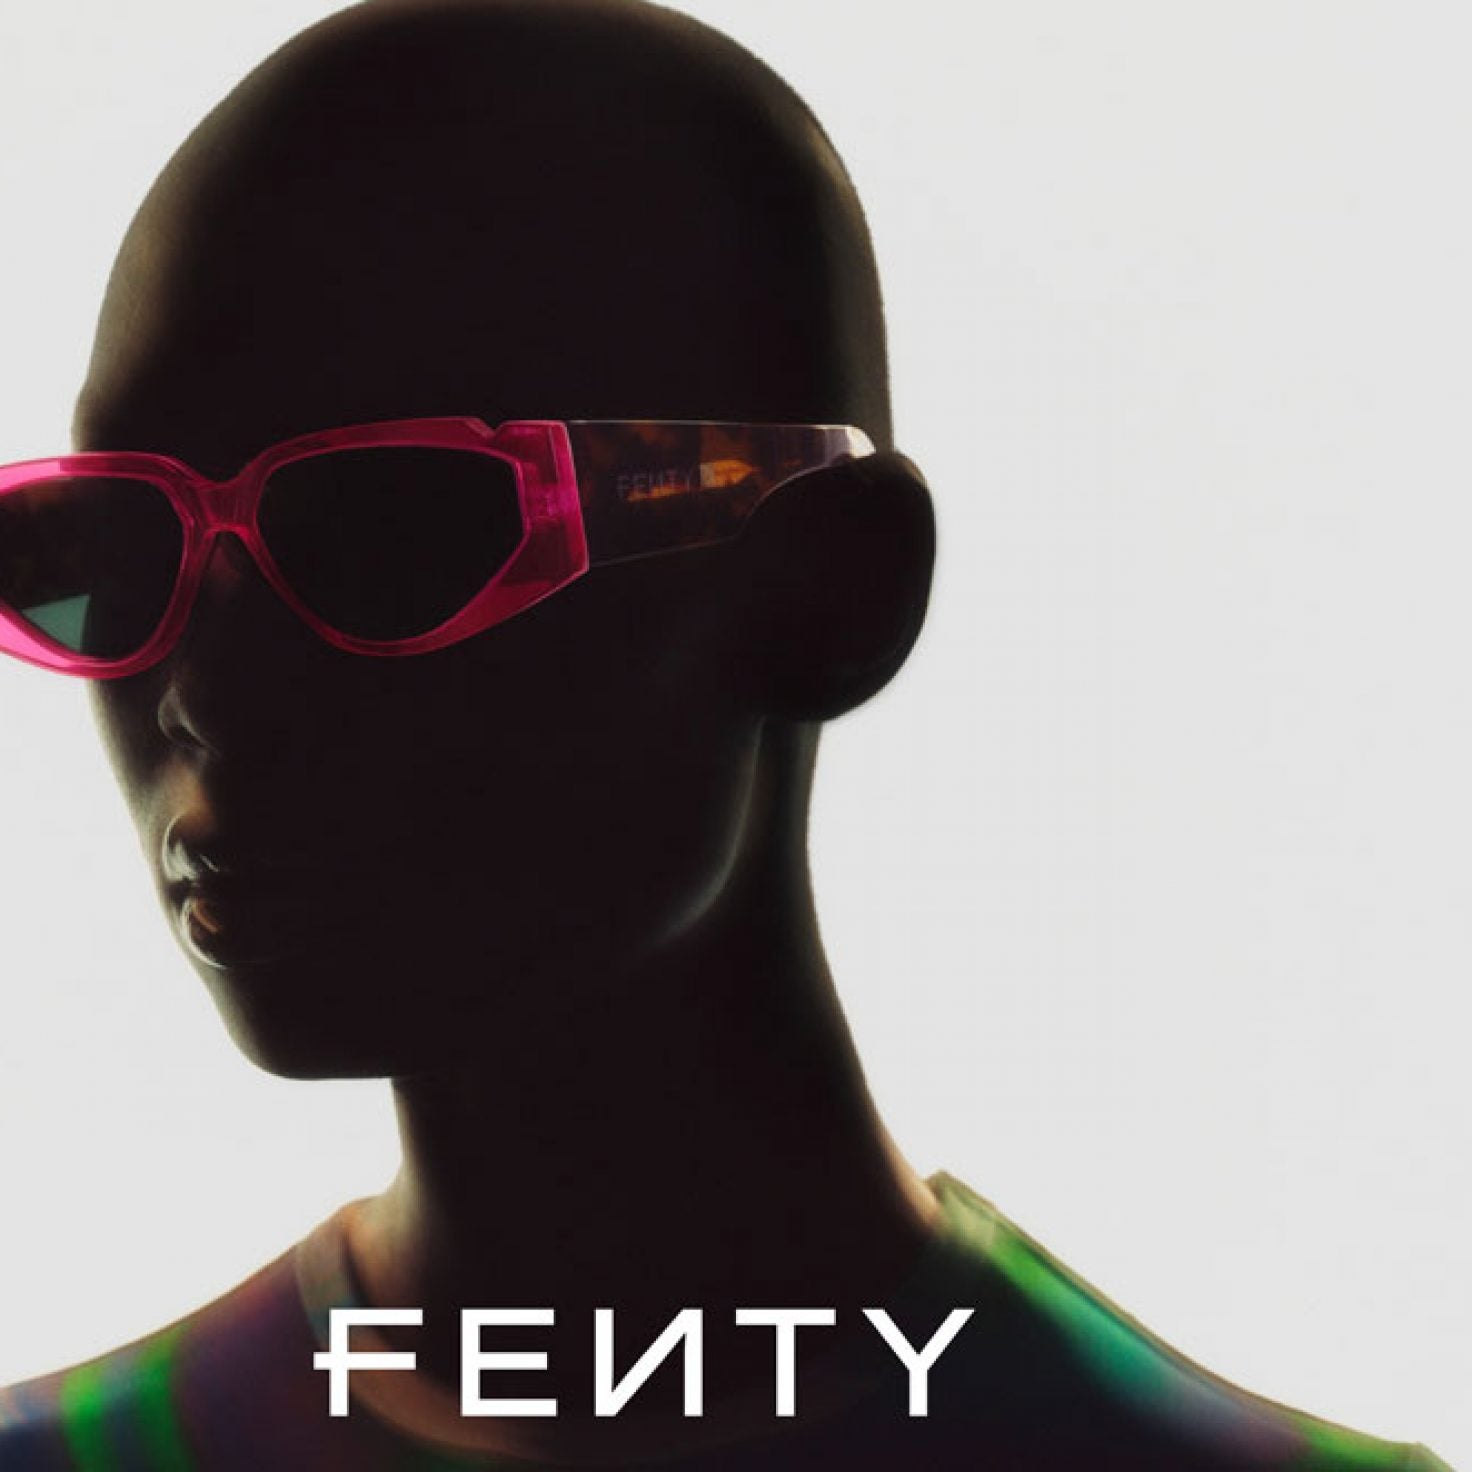 Rihanna Releases A New Collection Of Fenty Eyewear